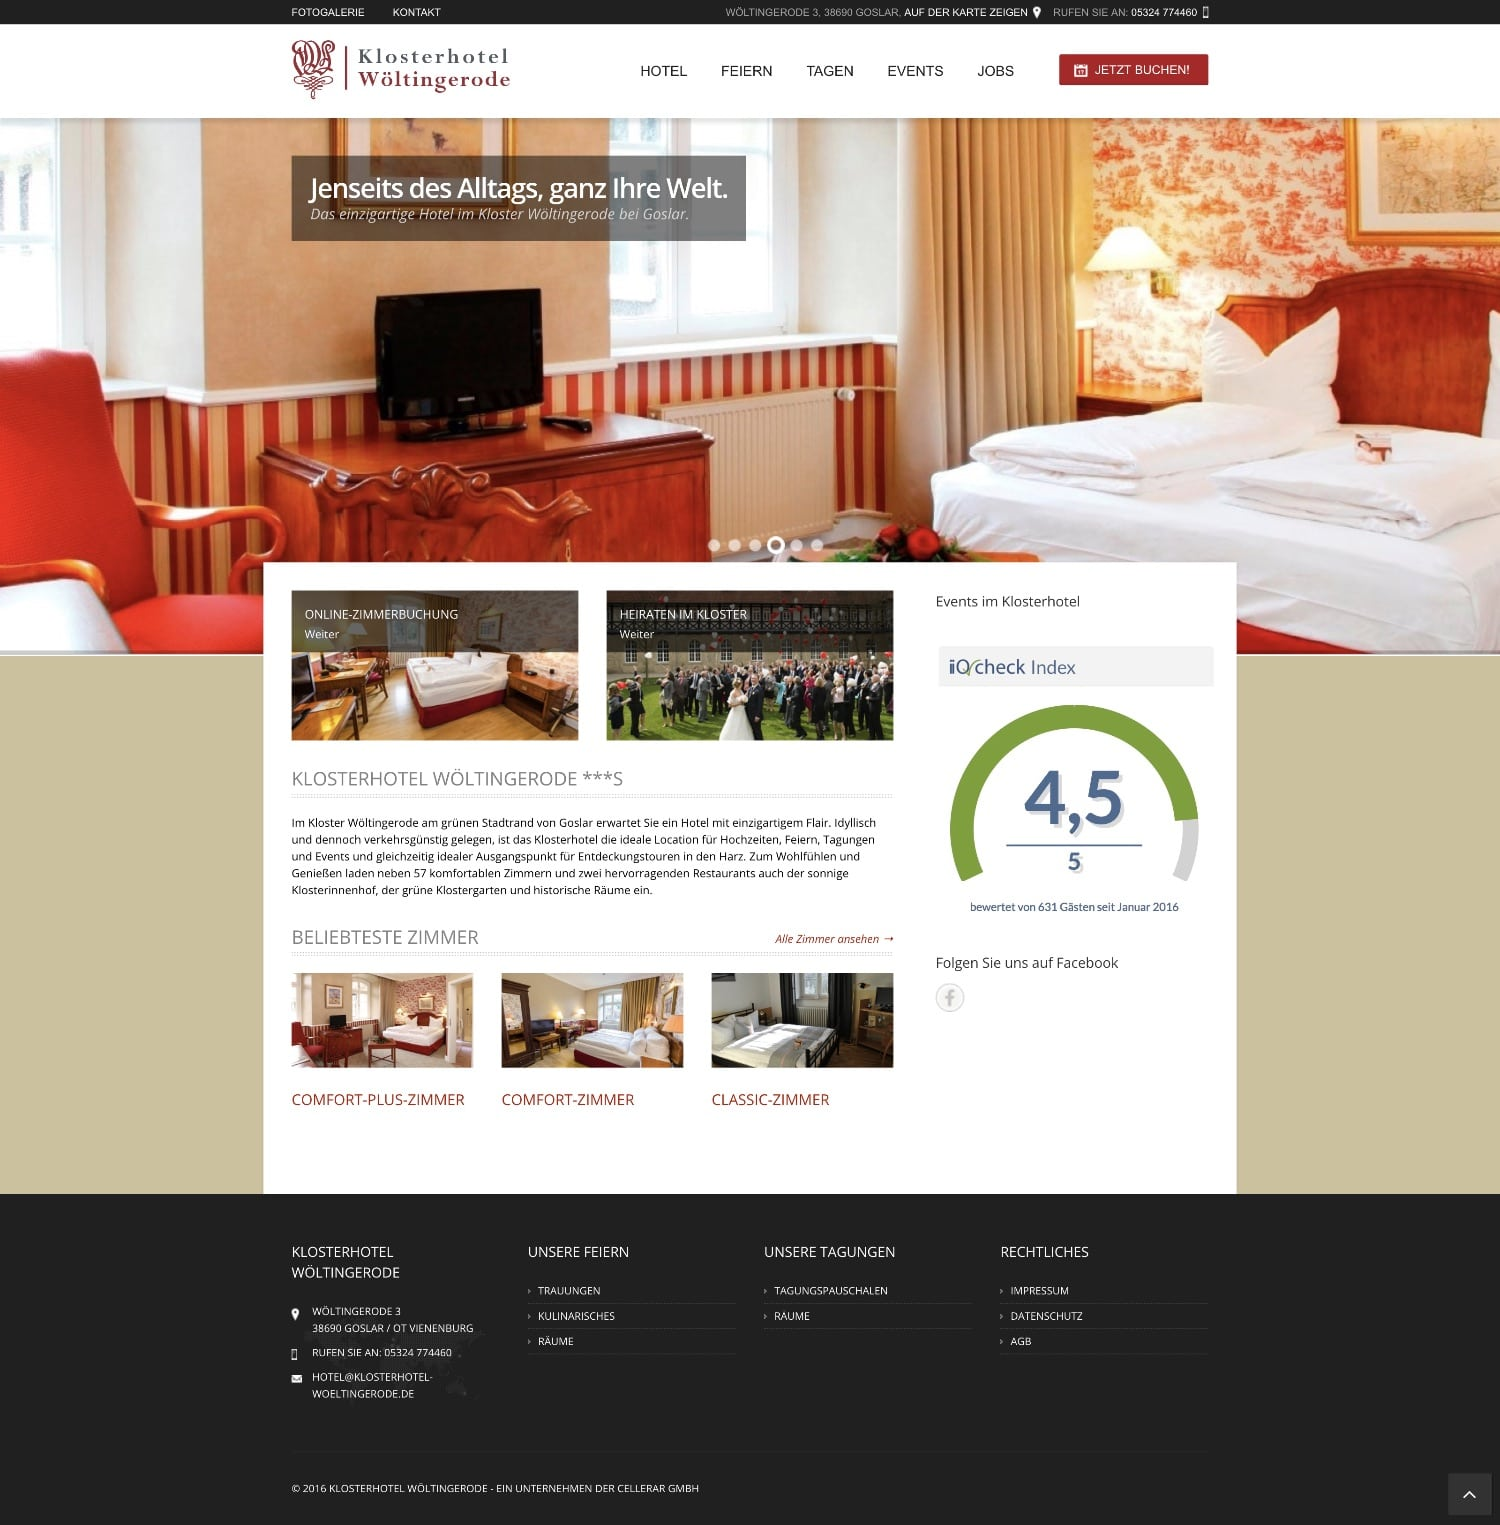 Wordpress referenz klosterhotel w ltingerode elbnetz for Design hotel goslar